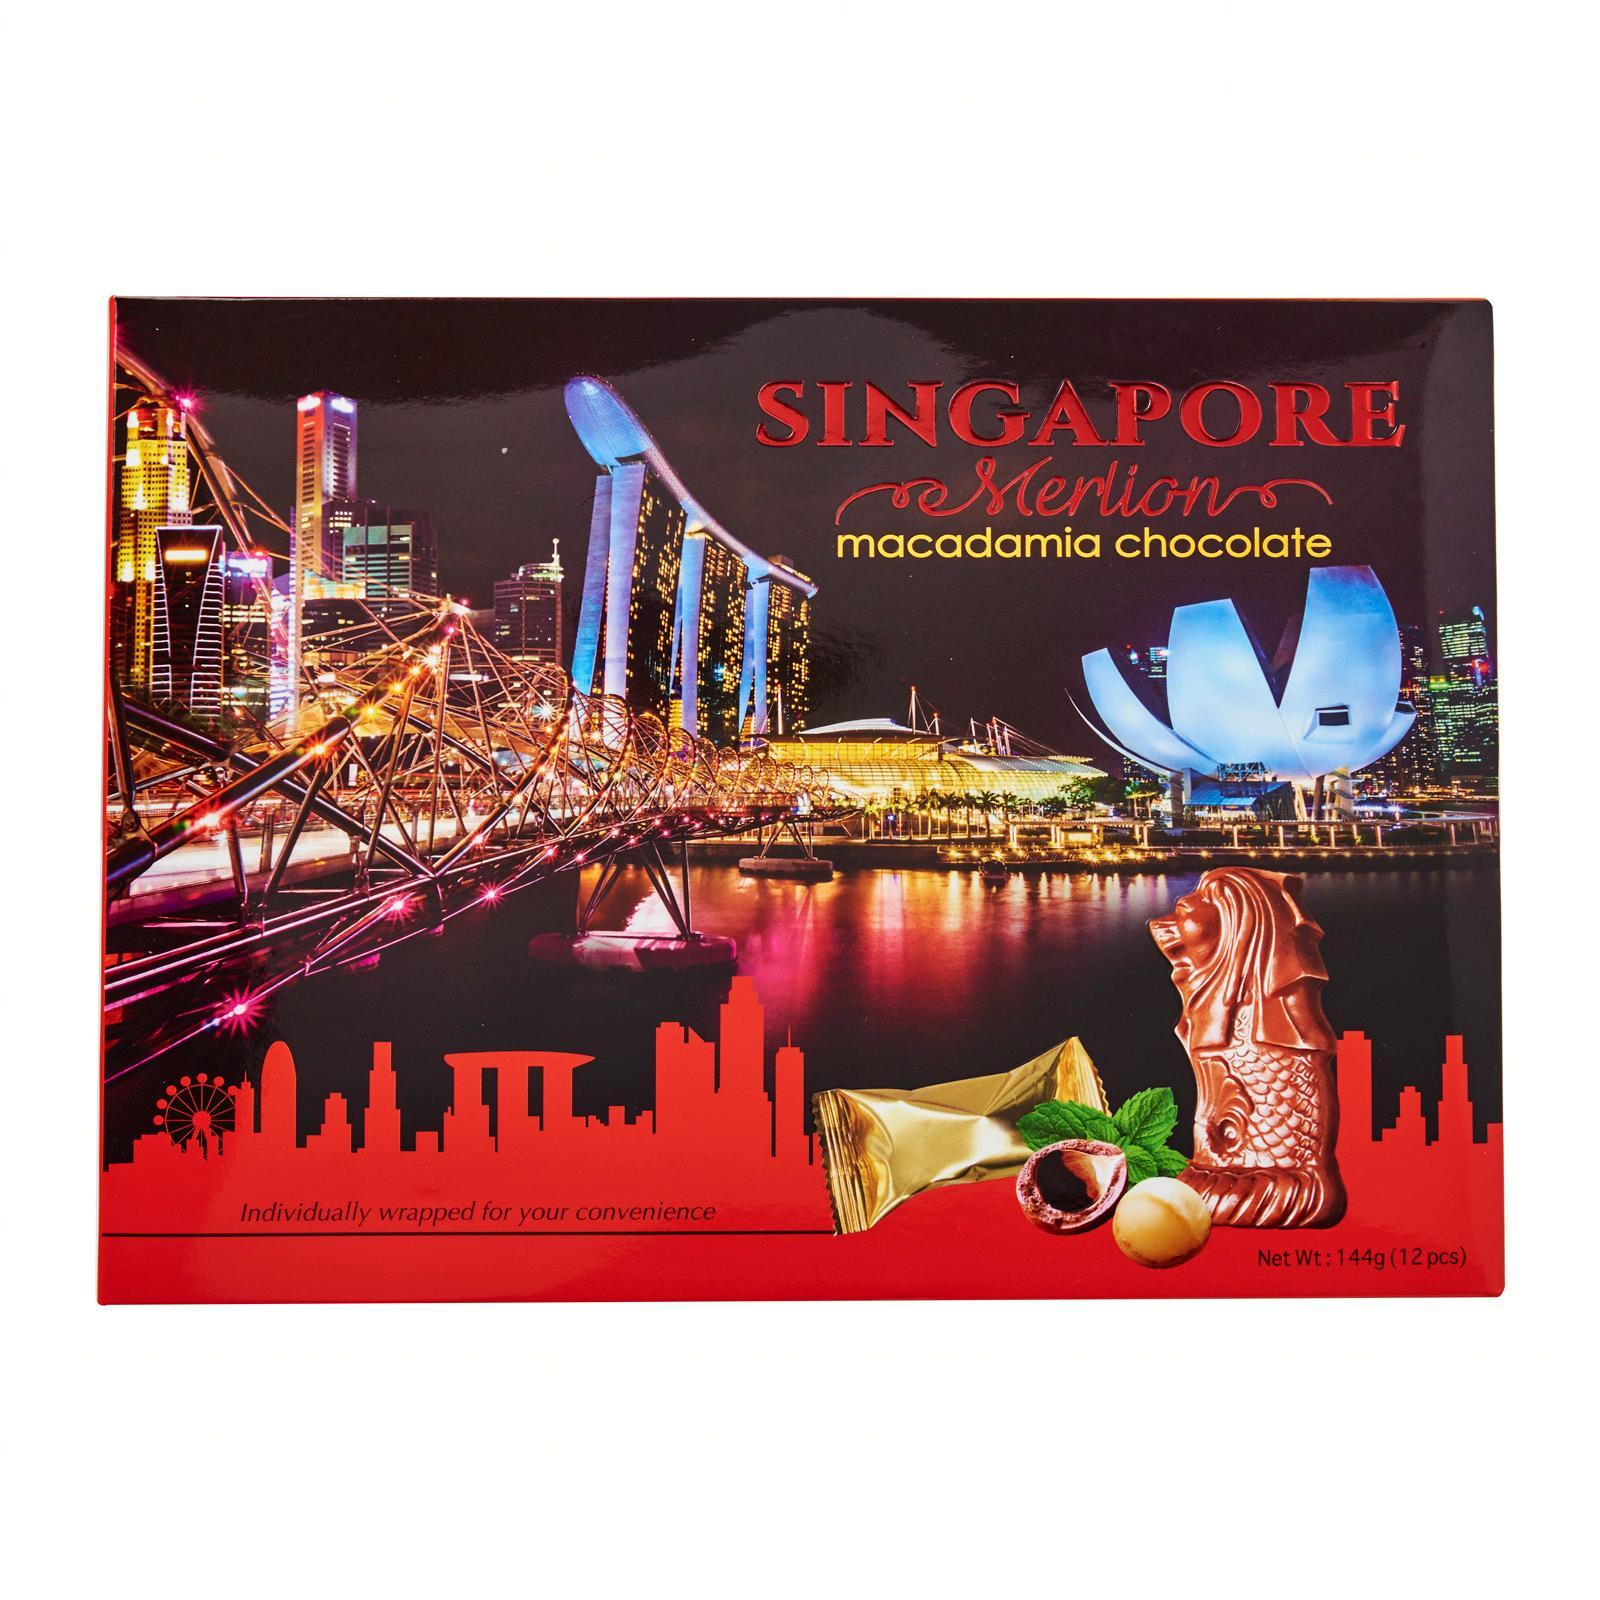 Manly Singapore Merlion Macadamia Chocolate (Individually Wrapped)